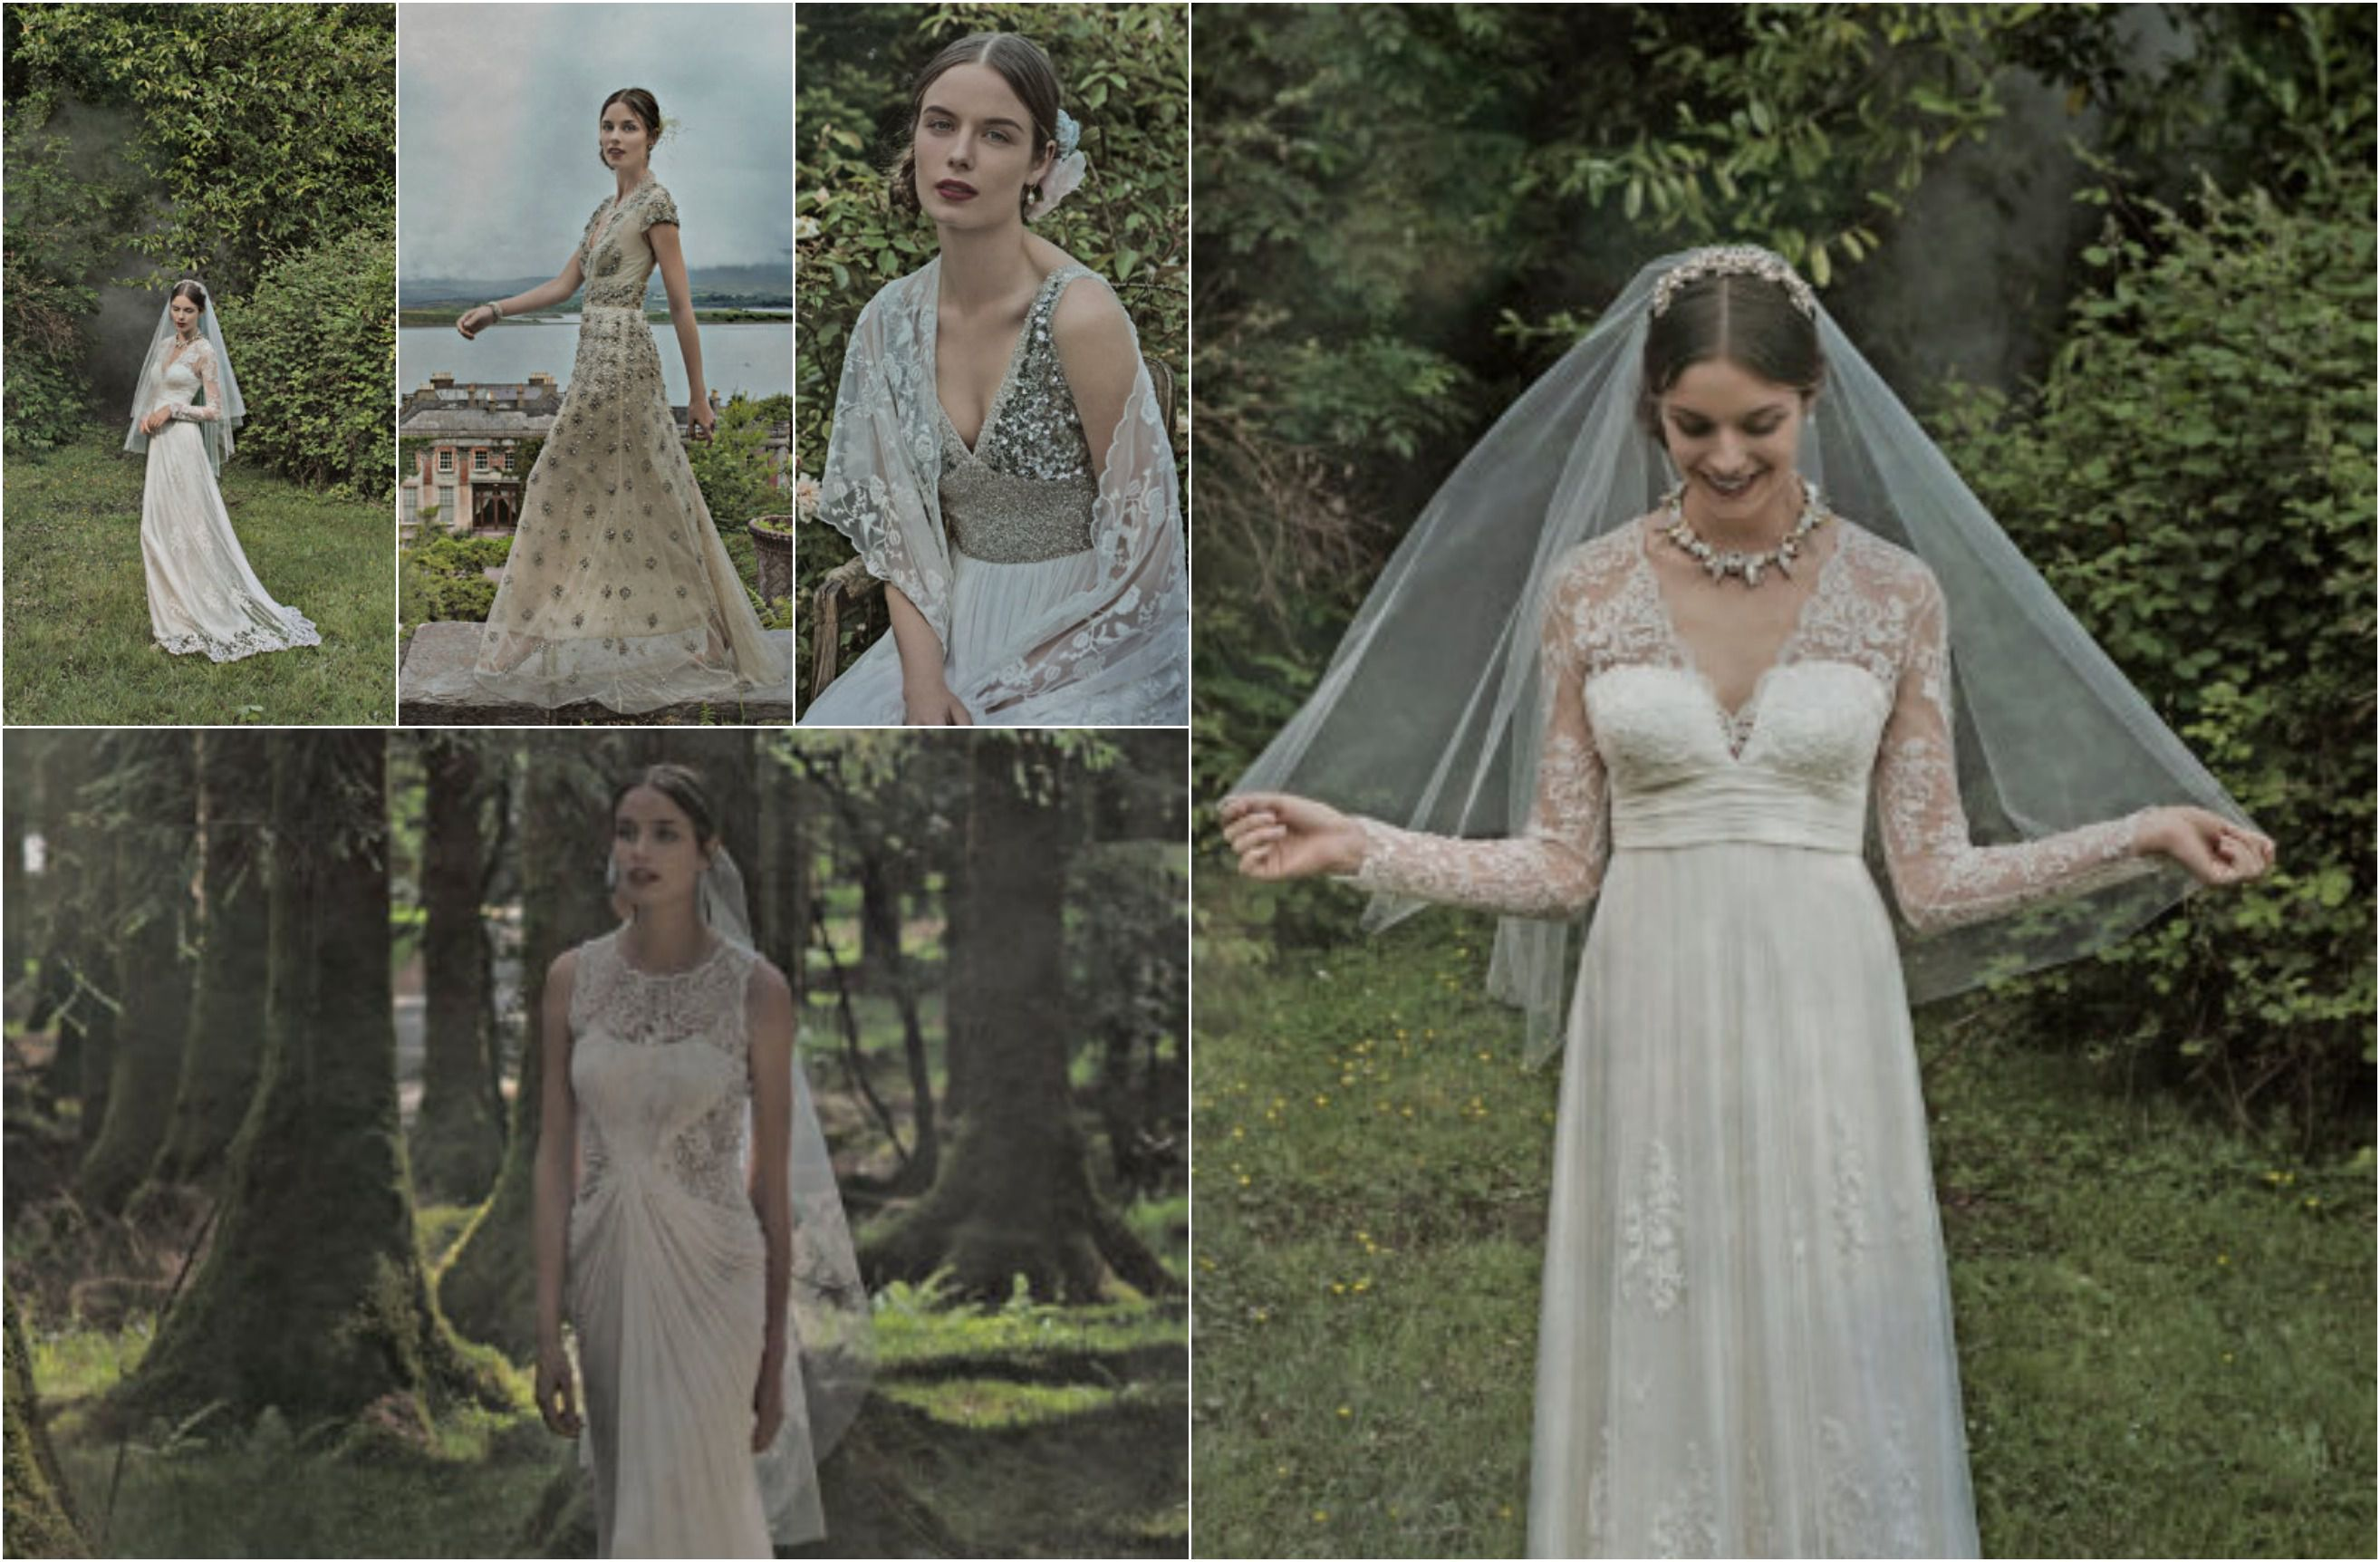 BHLDN Fall Wedding Gowns - Rustic Wedding Chic